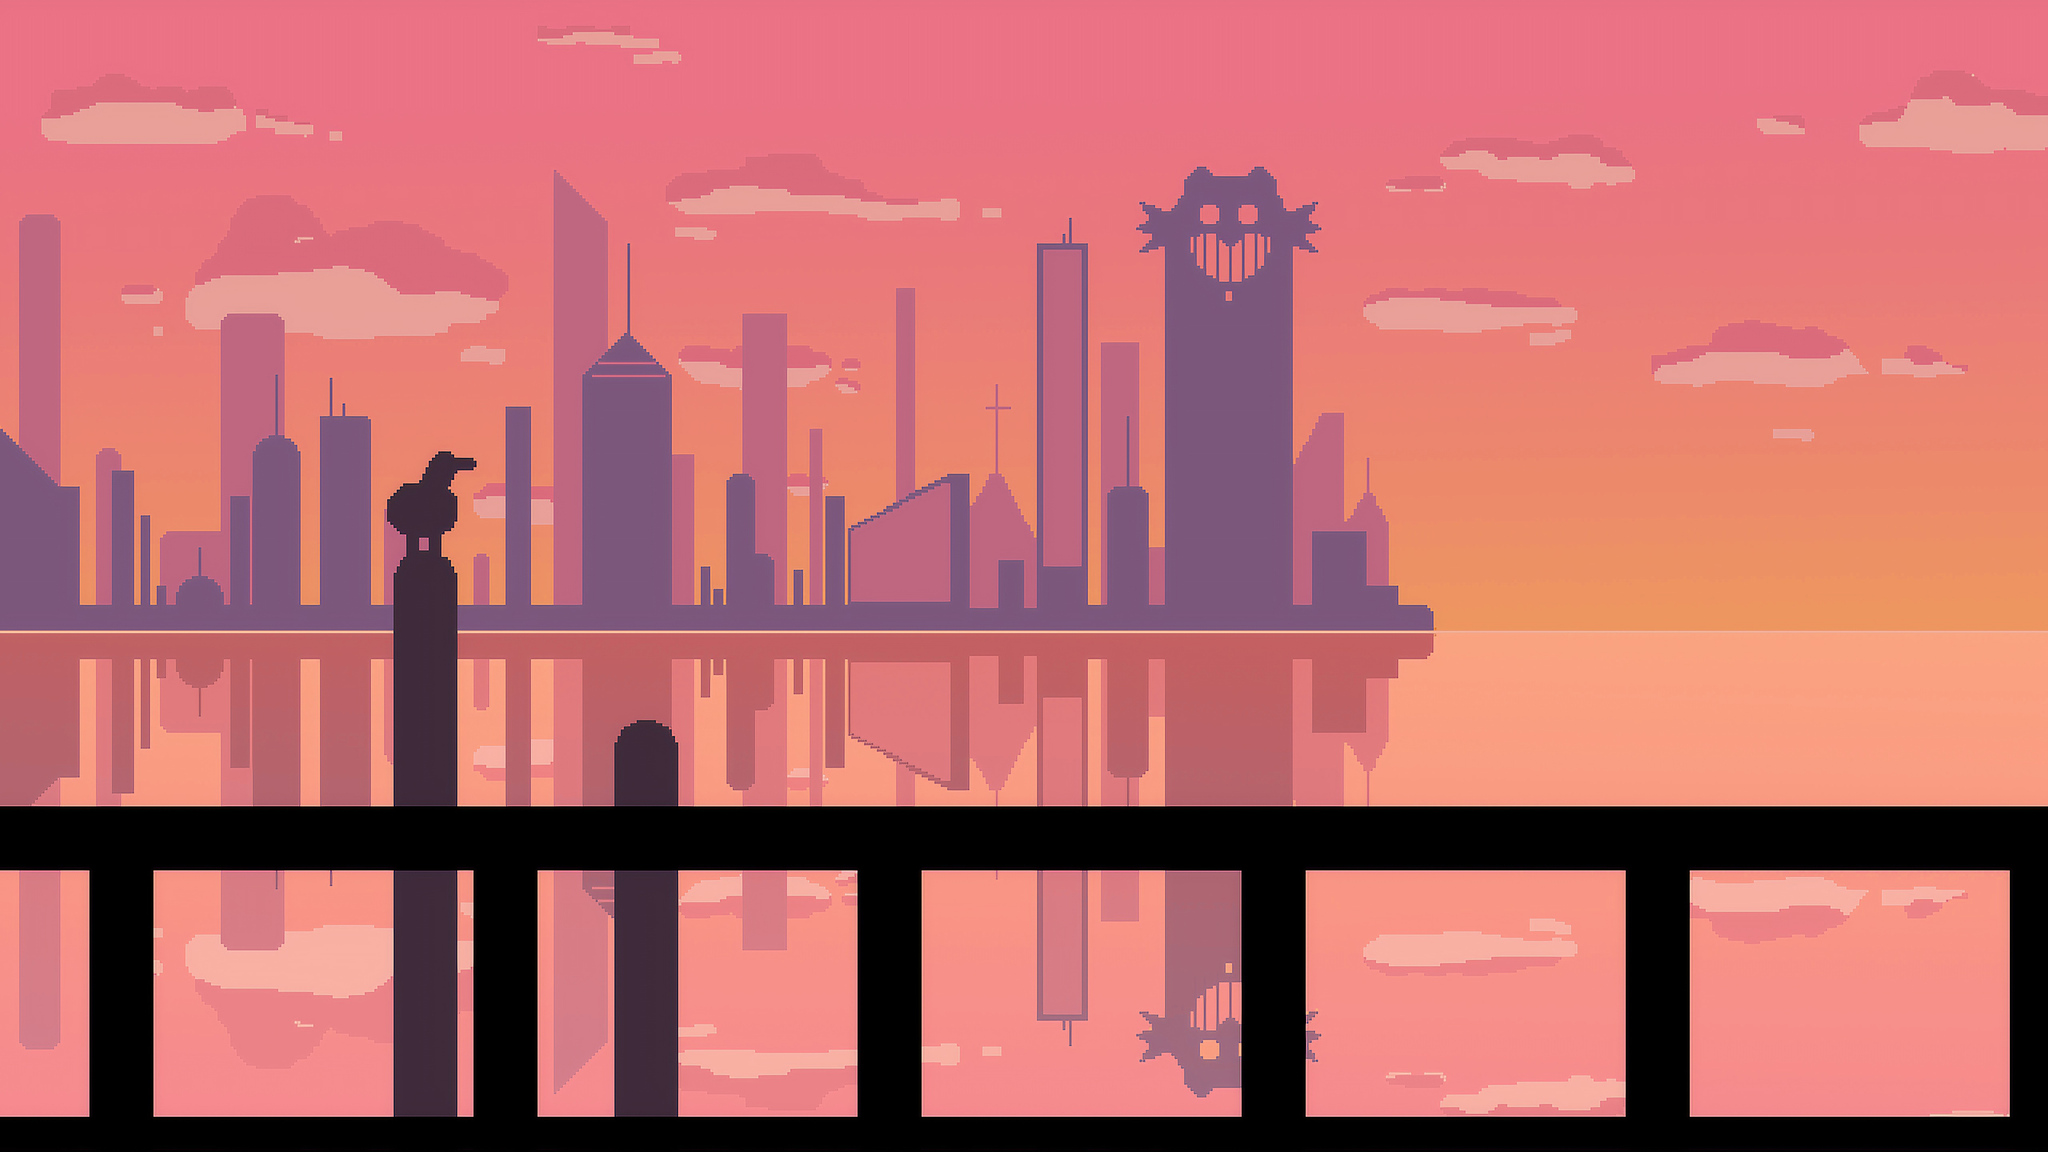 2048x1152 Sunset At Pixel City 2048x1152 Resolution Hd 4k